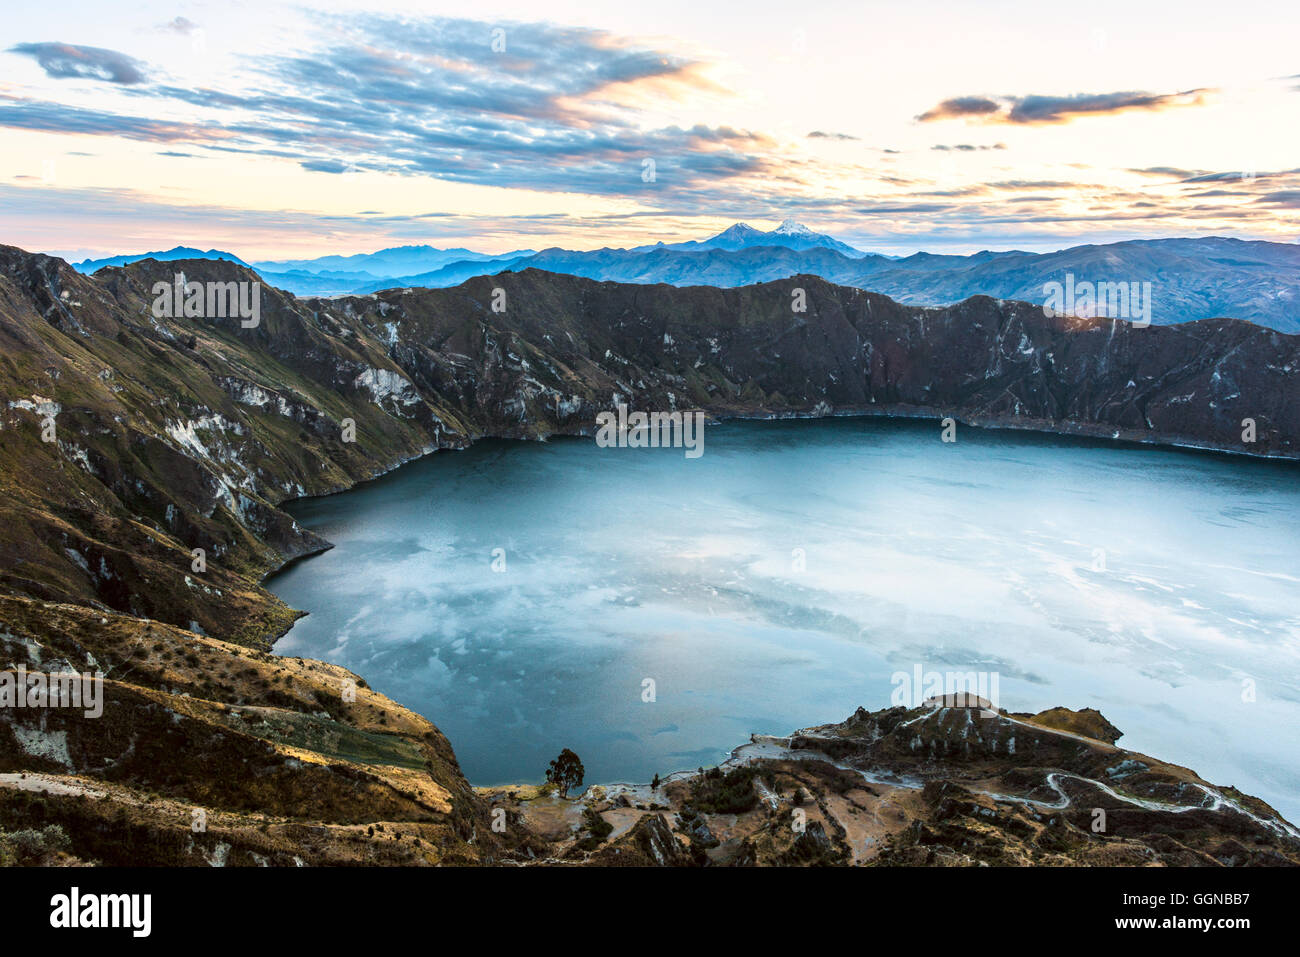 Ilinizas Volcanoes under the Quilotoa lagoon, Andes. Ecuador. - Stock Image